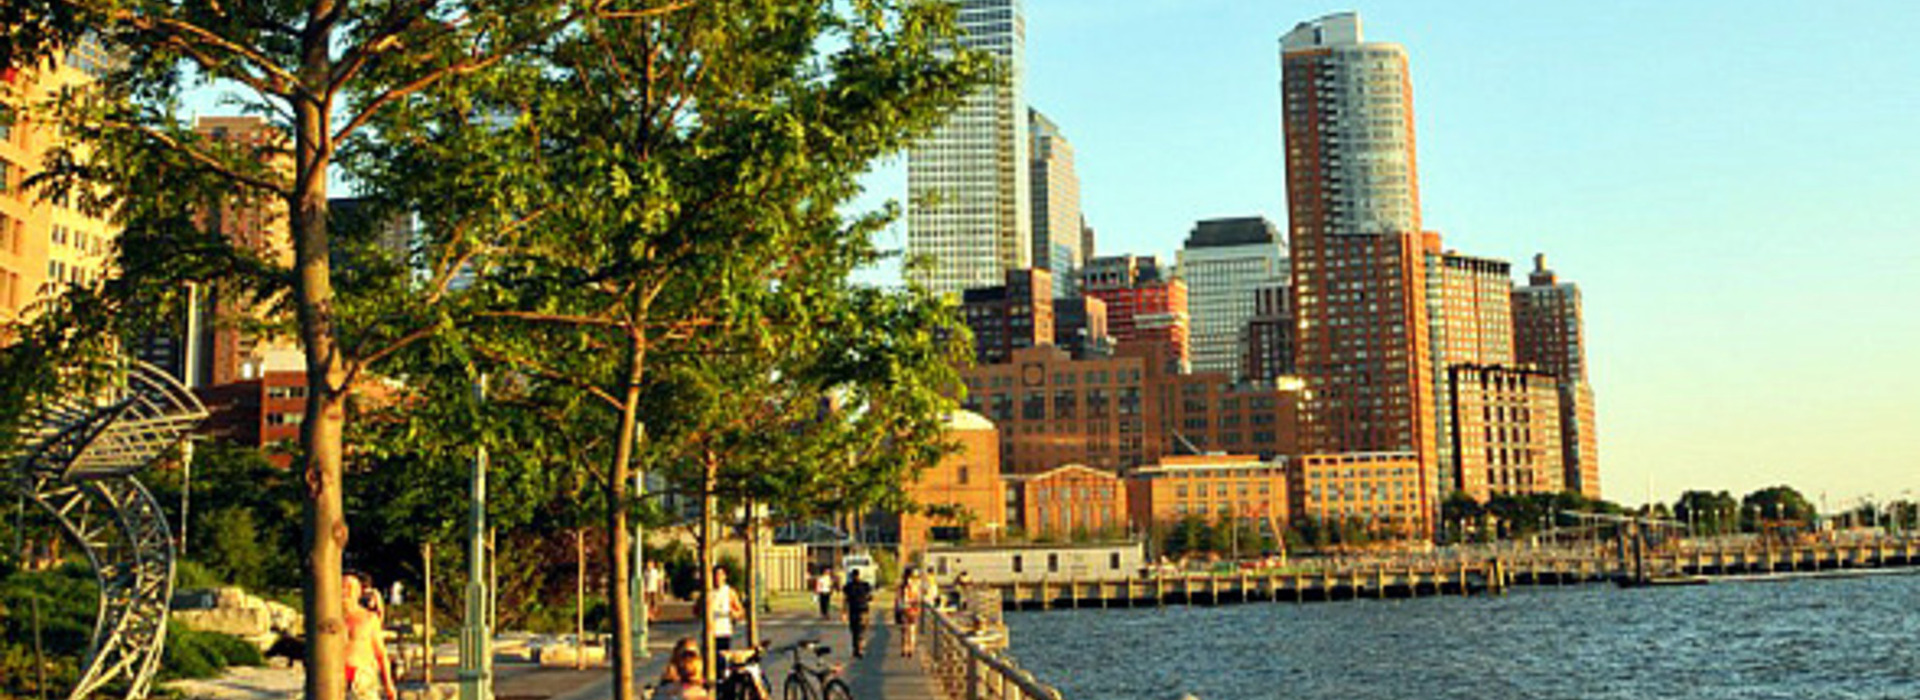 Barrio Battery Park Nueva York